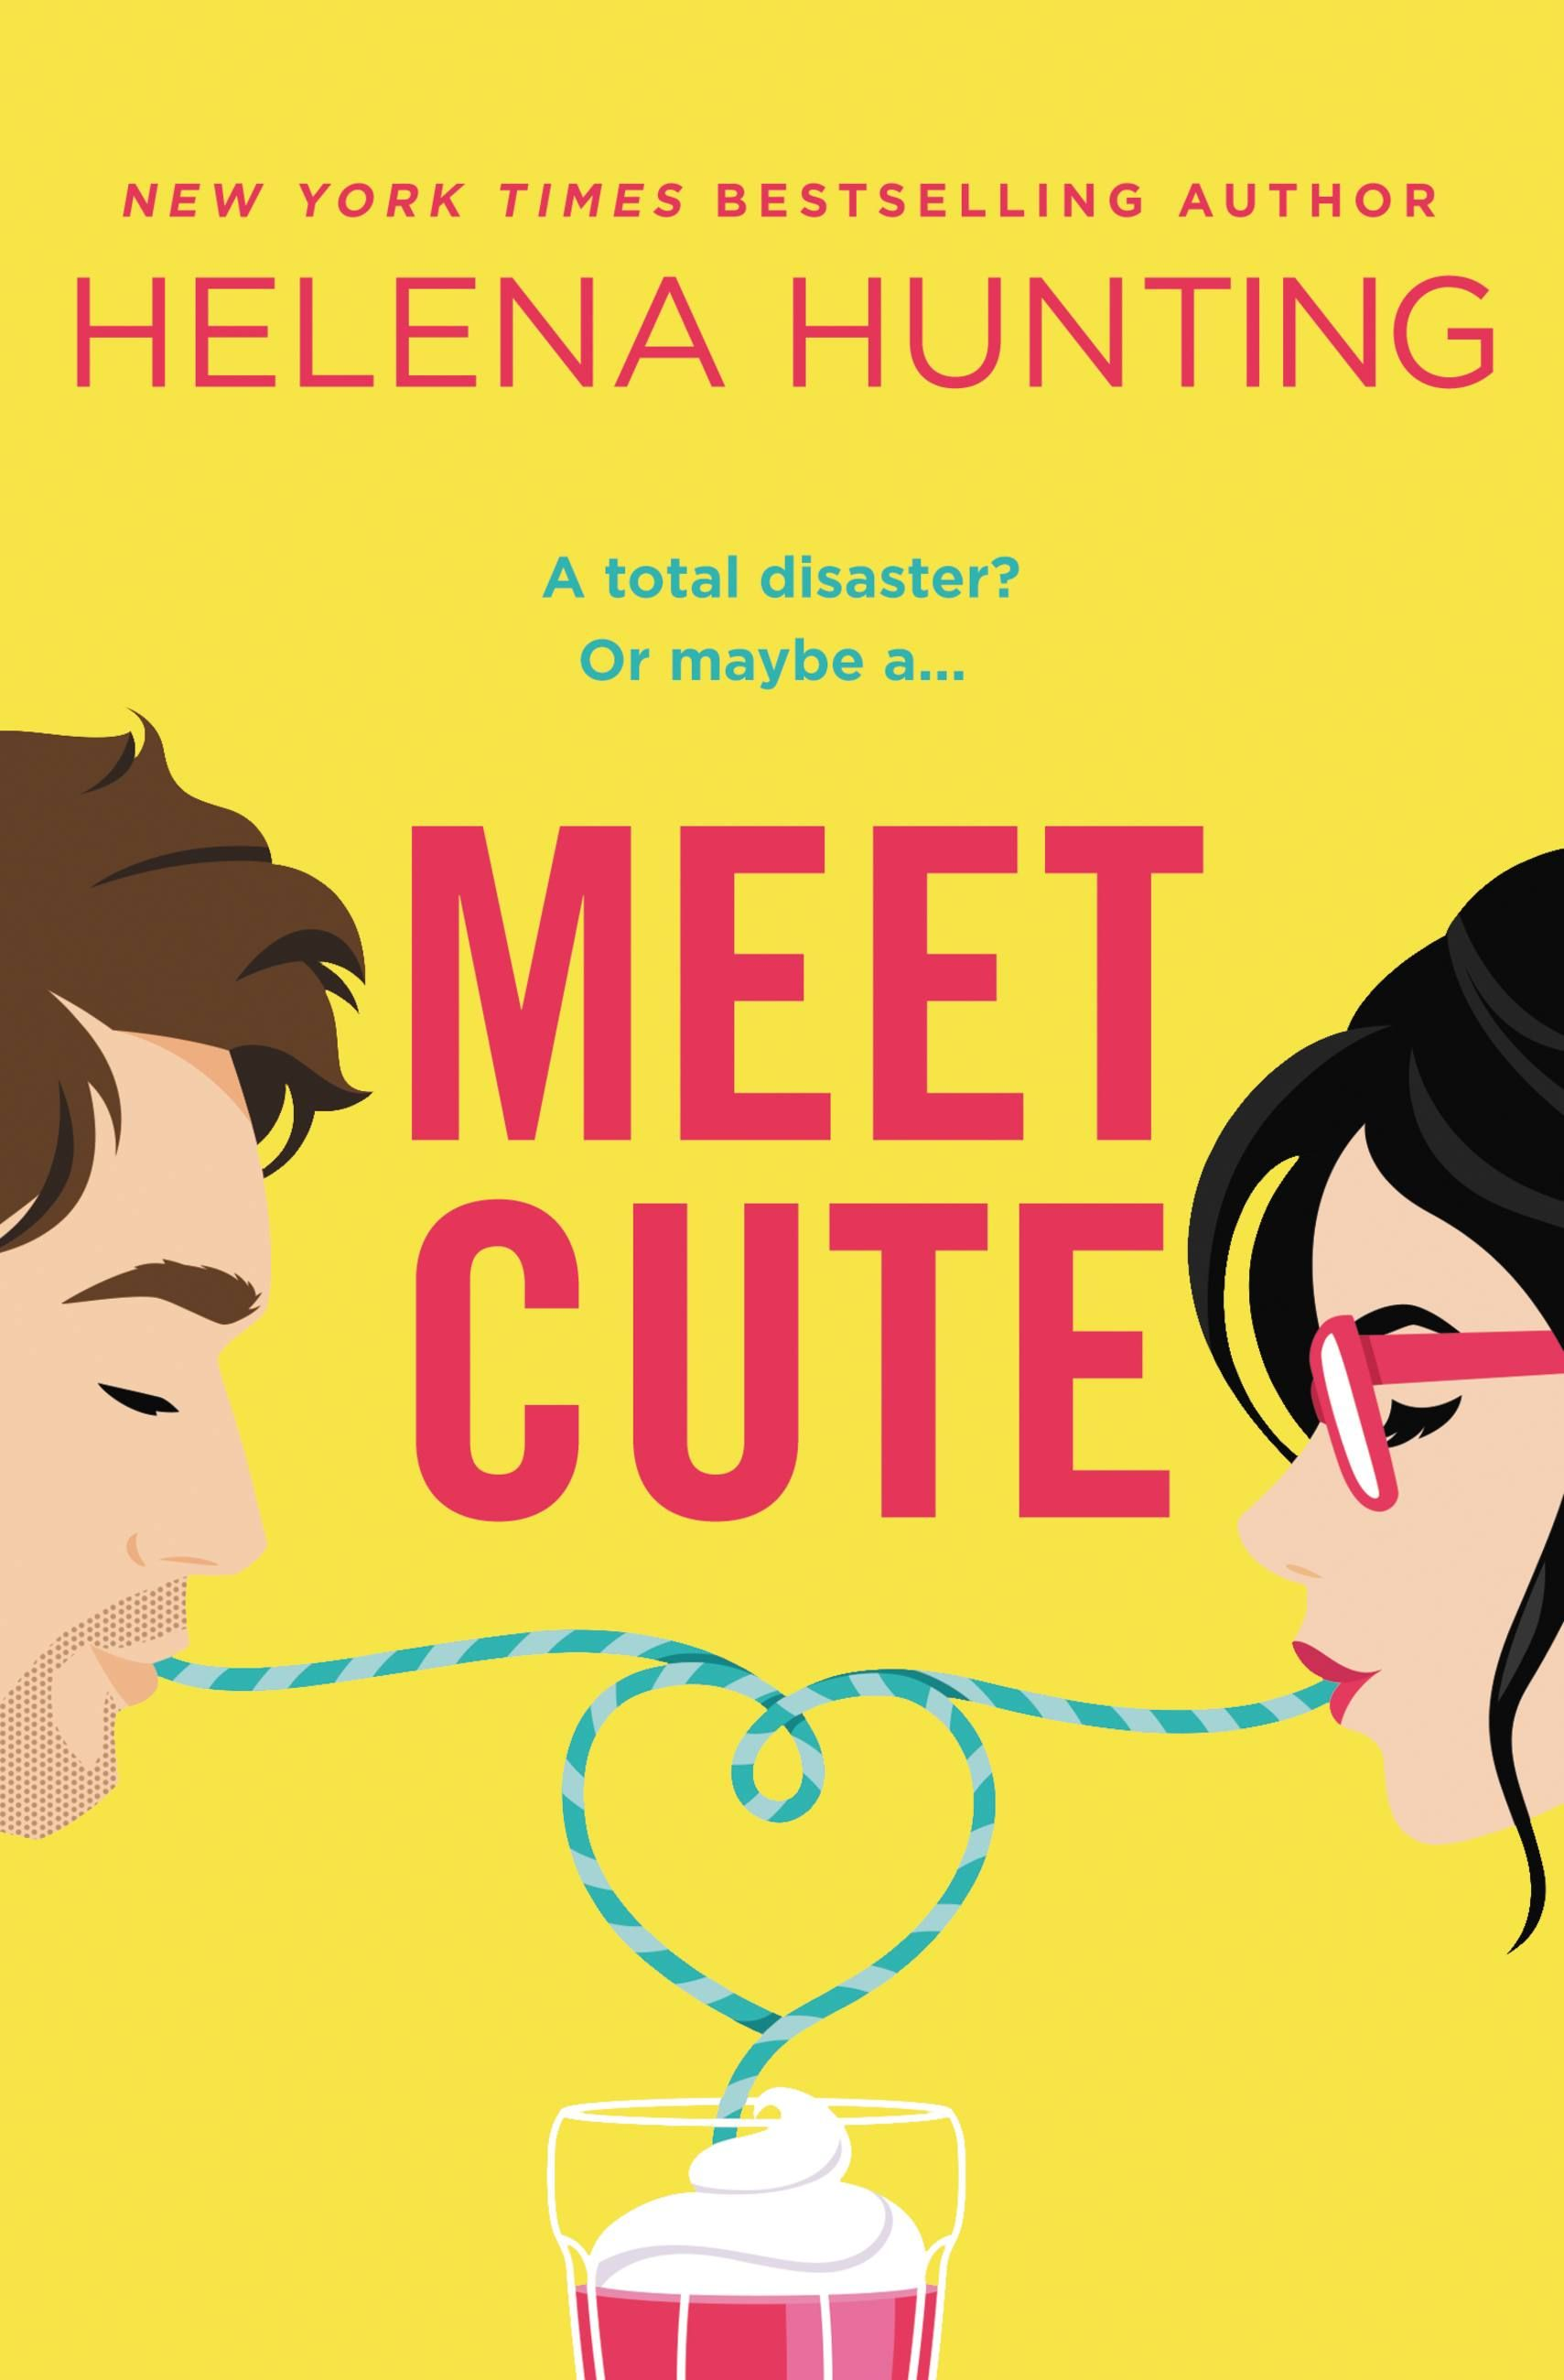 meet cute by helena hunting - Talk about an embarrassing introduction. On her first day of law school, Kailyn ran - quite literally - into the actor she crushed on as a teenager, ending with him sprawled on top of her. Mortified to discover the Daxton Hughes was also a student in her class, her embarrassment over their meet-cute quickly turned into a friendship she never expected. Of course, she never saw his betrayal coming either...Now, eight years later, Dax is in her office asking for legal advice. Despite her anger, Kailyn can't help feeling sorry for the devastated man who just became sole guardian to his thirteen-year-old sister. But when her boss gets wind of Kailyn's new celebrity client, there's even more at stake than Dax's custody issues: if she gets Dax to work at their firm, she'll be promoted to partner.The more time Kailyn spends with Dax and his sister, the more she starts to feel like a family, and the more she realizes the chemistry they had all those years ago is as fresh as ever. But will they be able to forgive the mistakes of the past, or will one betrayal lead to another?